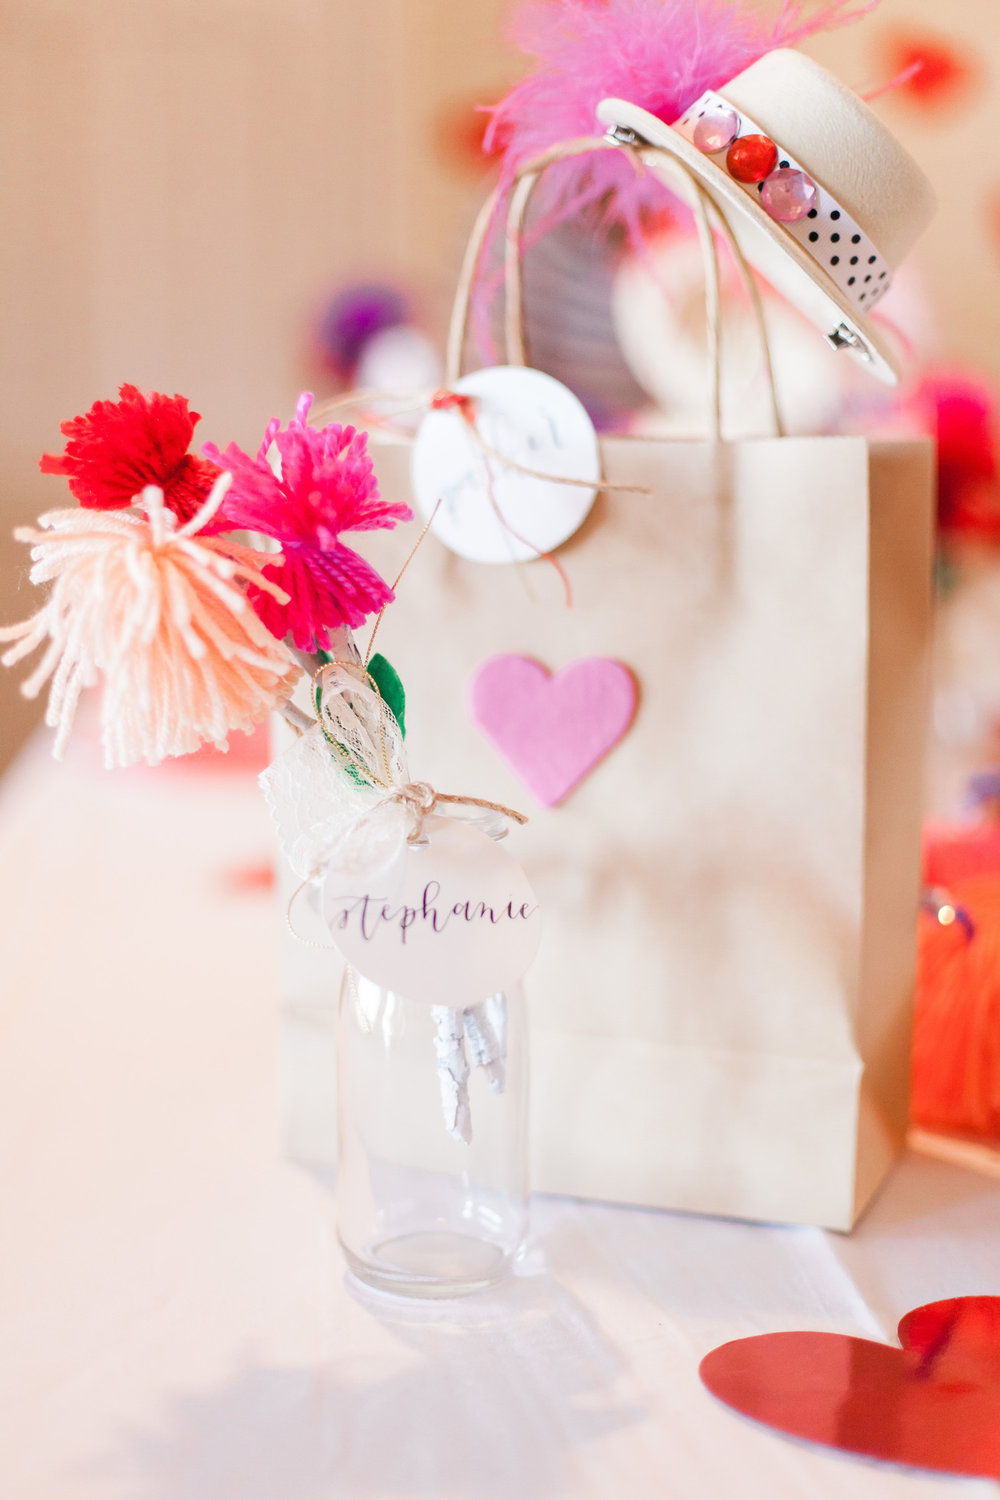 art-craft-valentines-day-party-Connie-Meinhardt-Photography-bag-and-hat.jpg